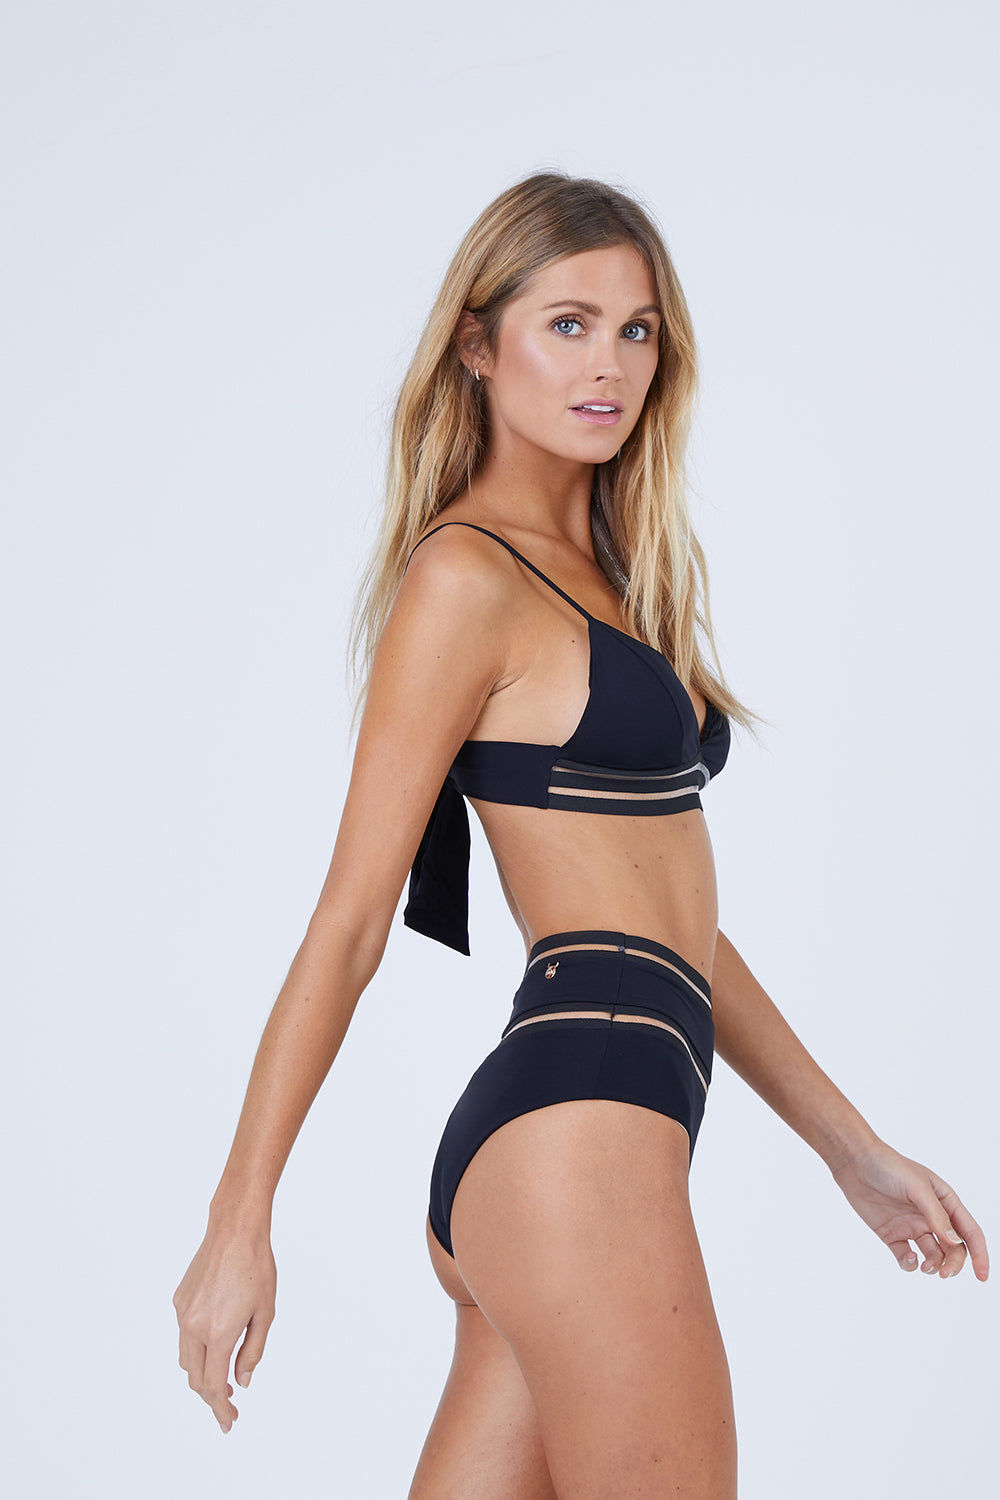 MALAI Line Free Triangle Bikini Top - Black Bikini Top | Black| Malai Line Free Triangle Bikini Top - Black. Features:  Triangle bikini top Transparent lines detail Thick underband for extra support  Adjustable shoulder straps Ties on the back Removable pads Front View